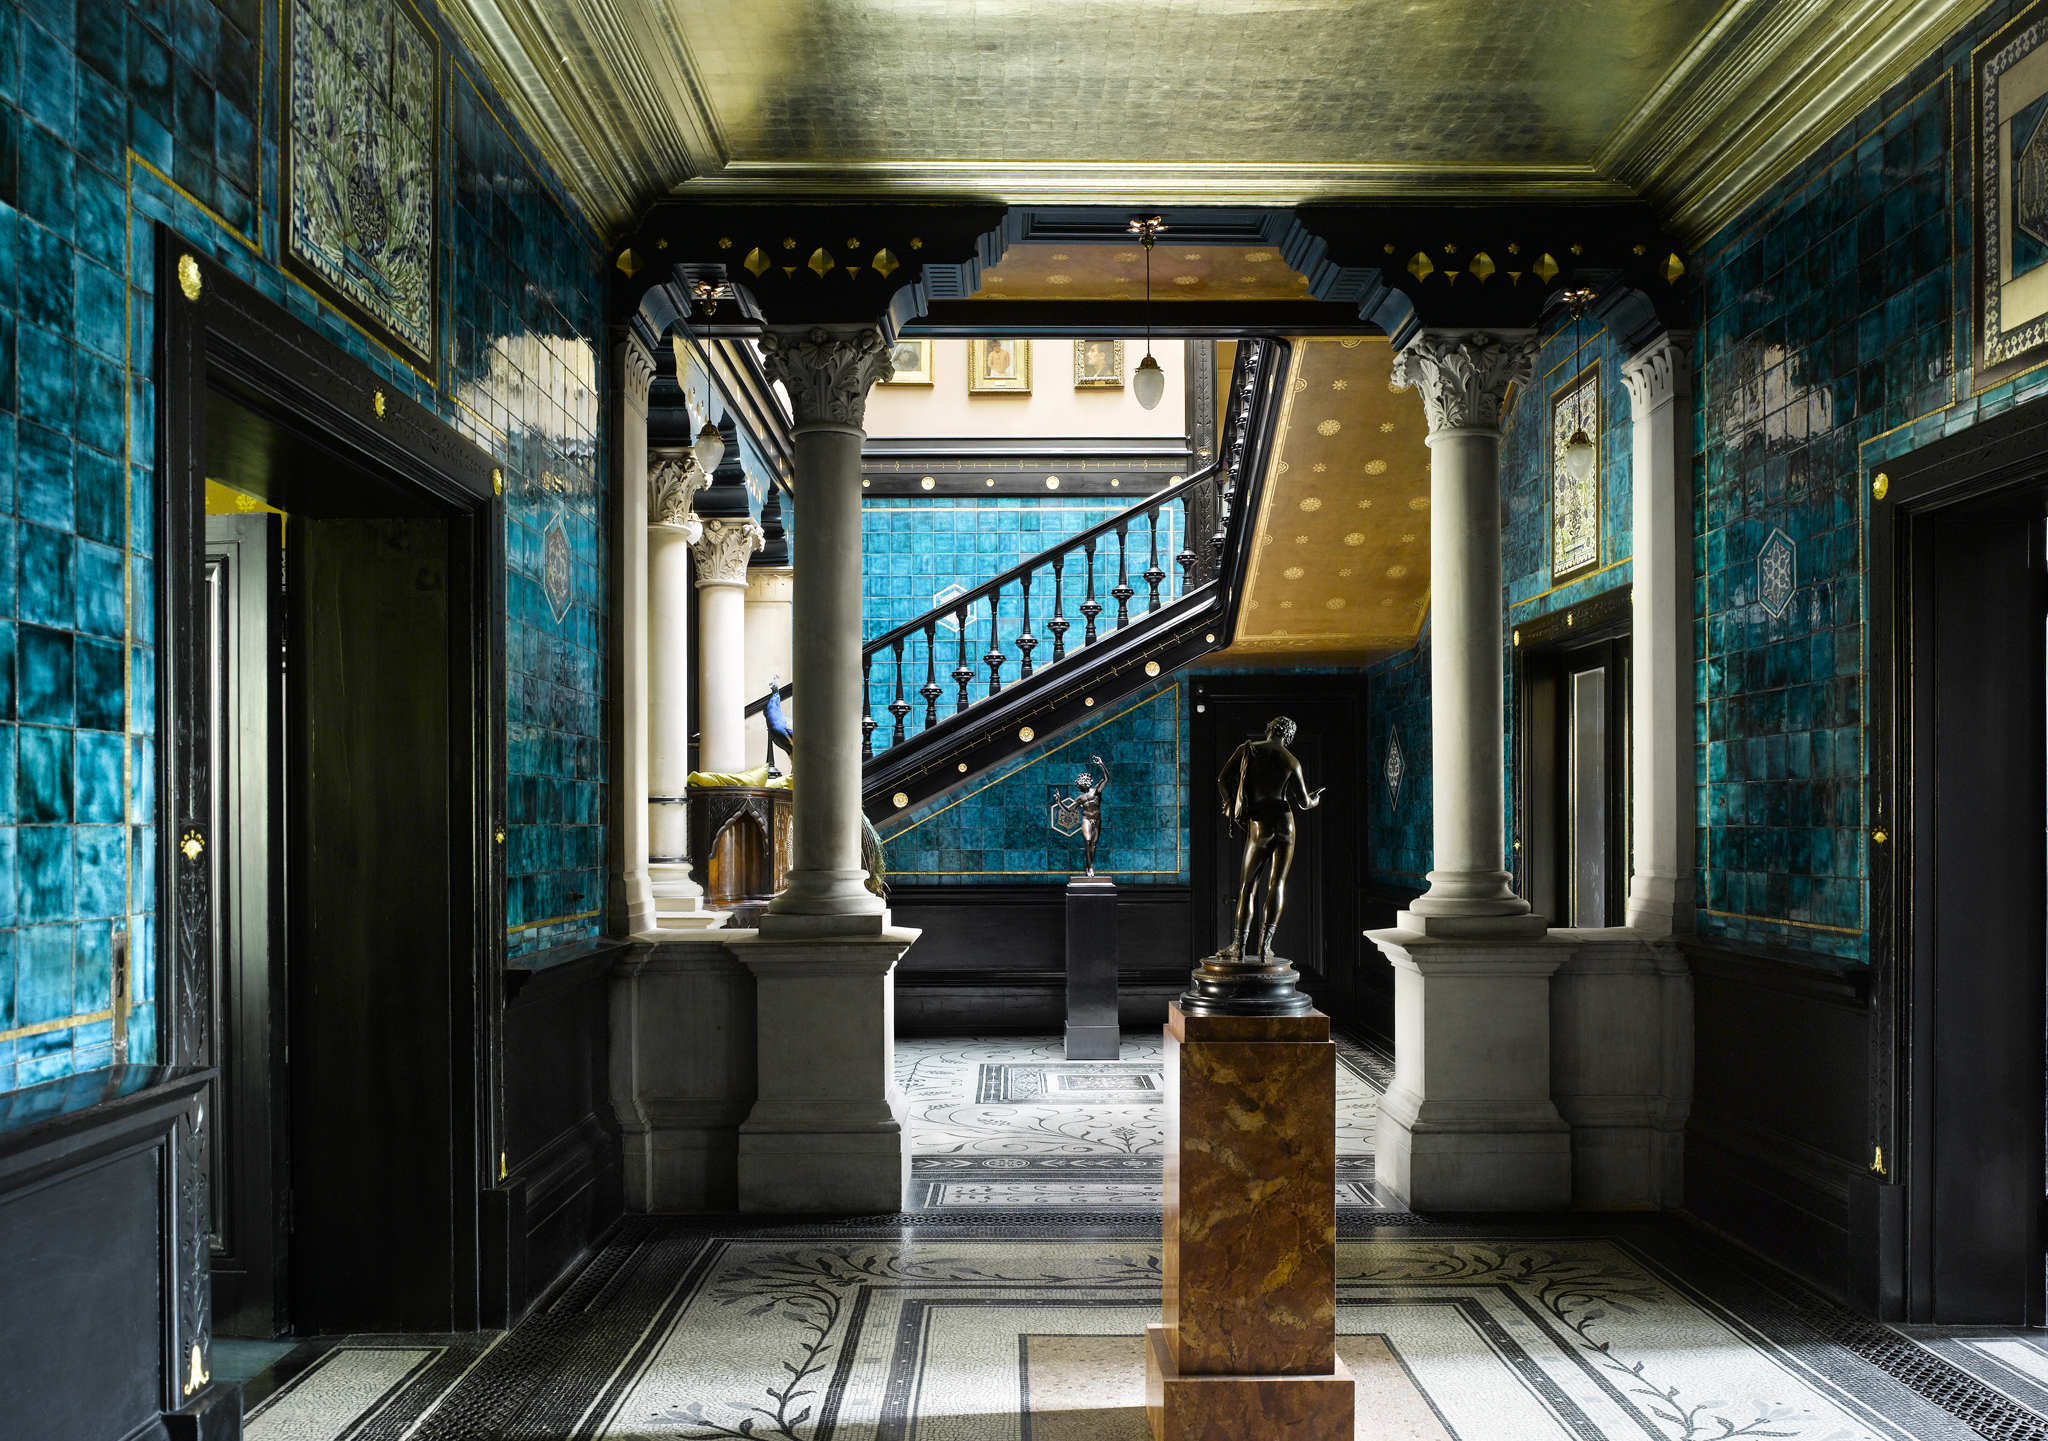 Narcissus Hall at the Leighton House Museum